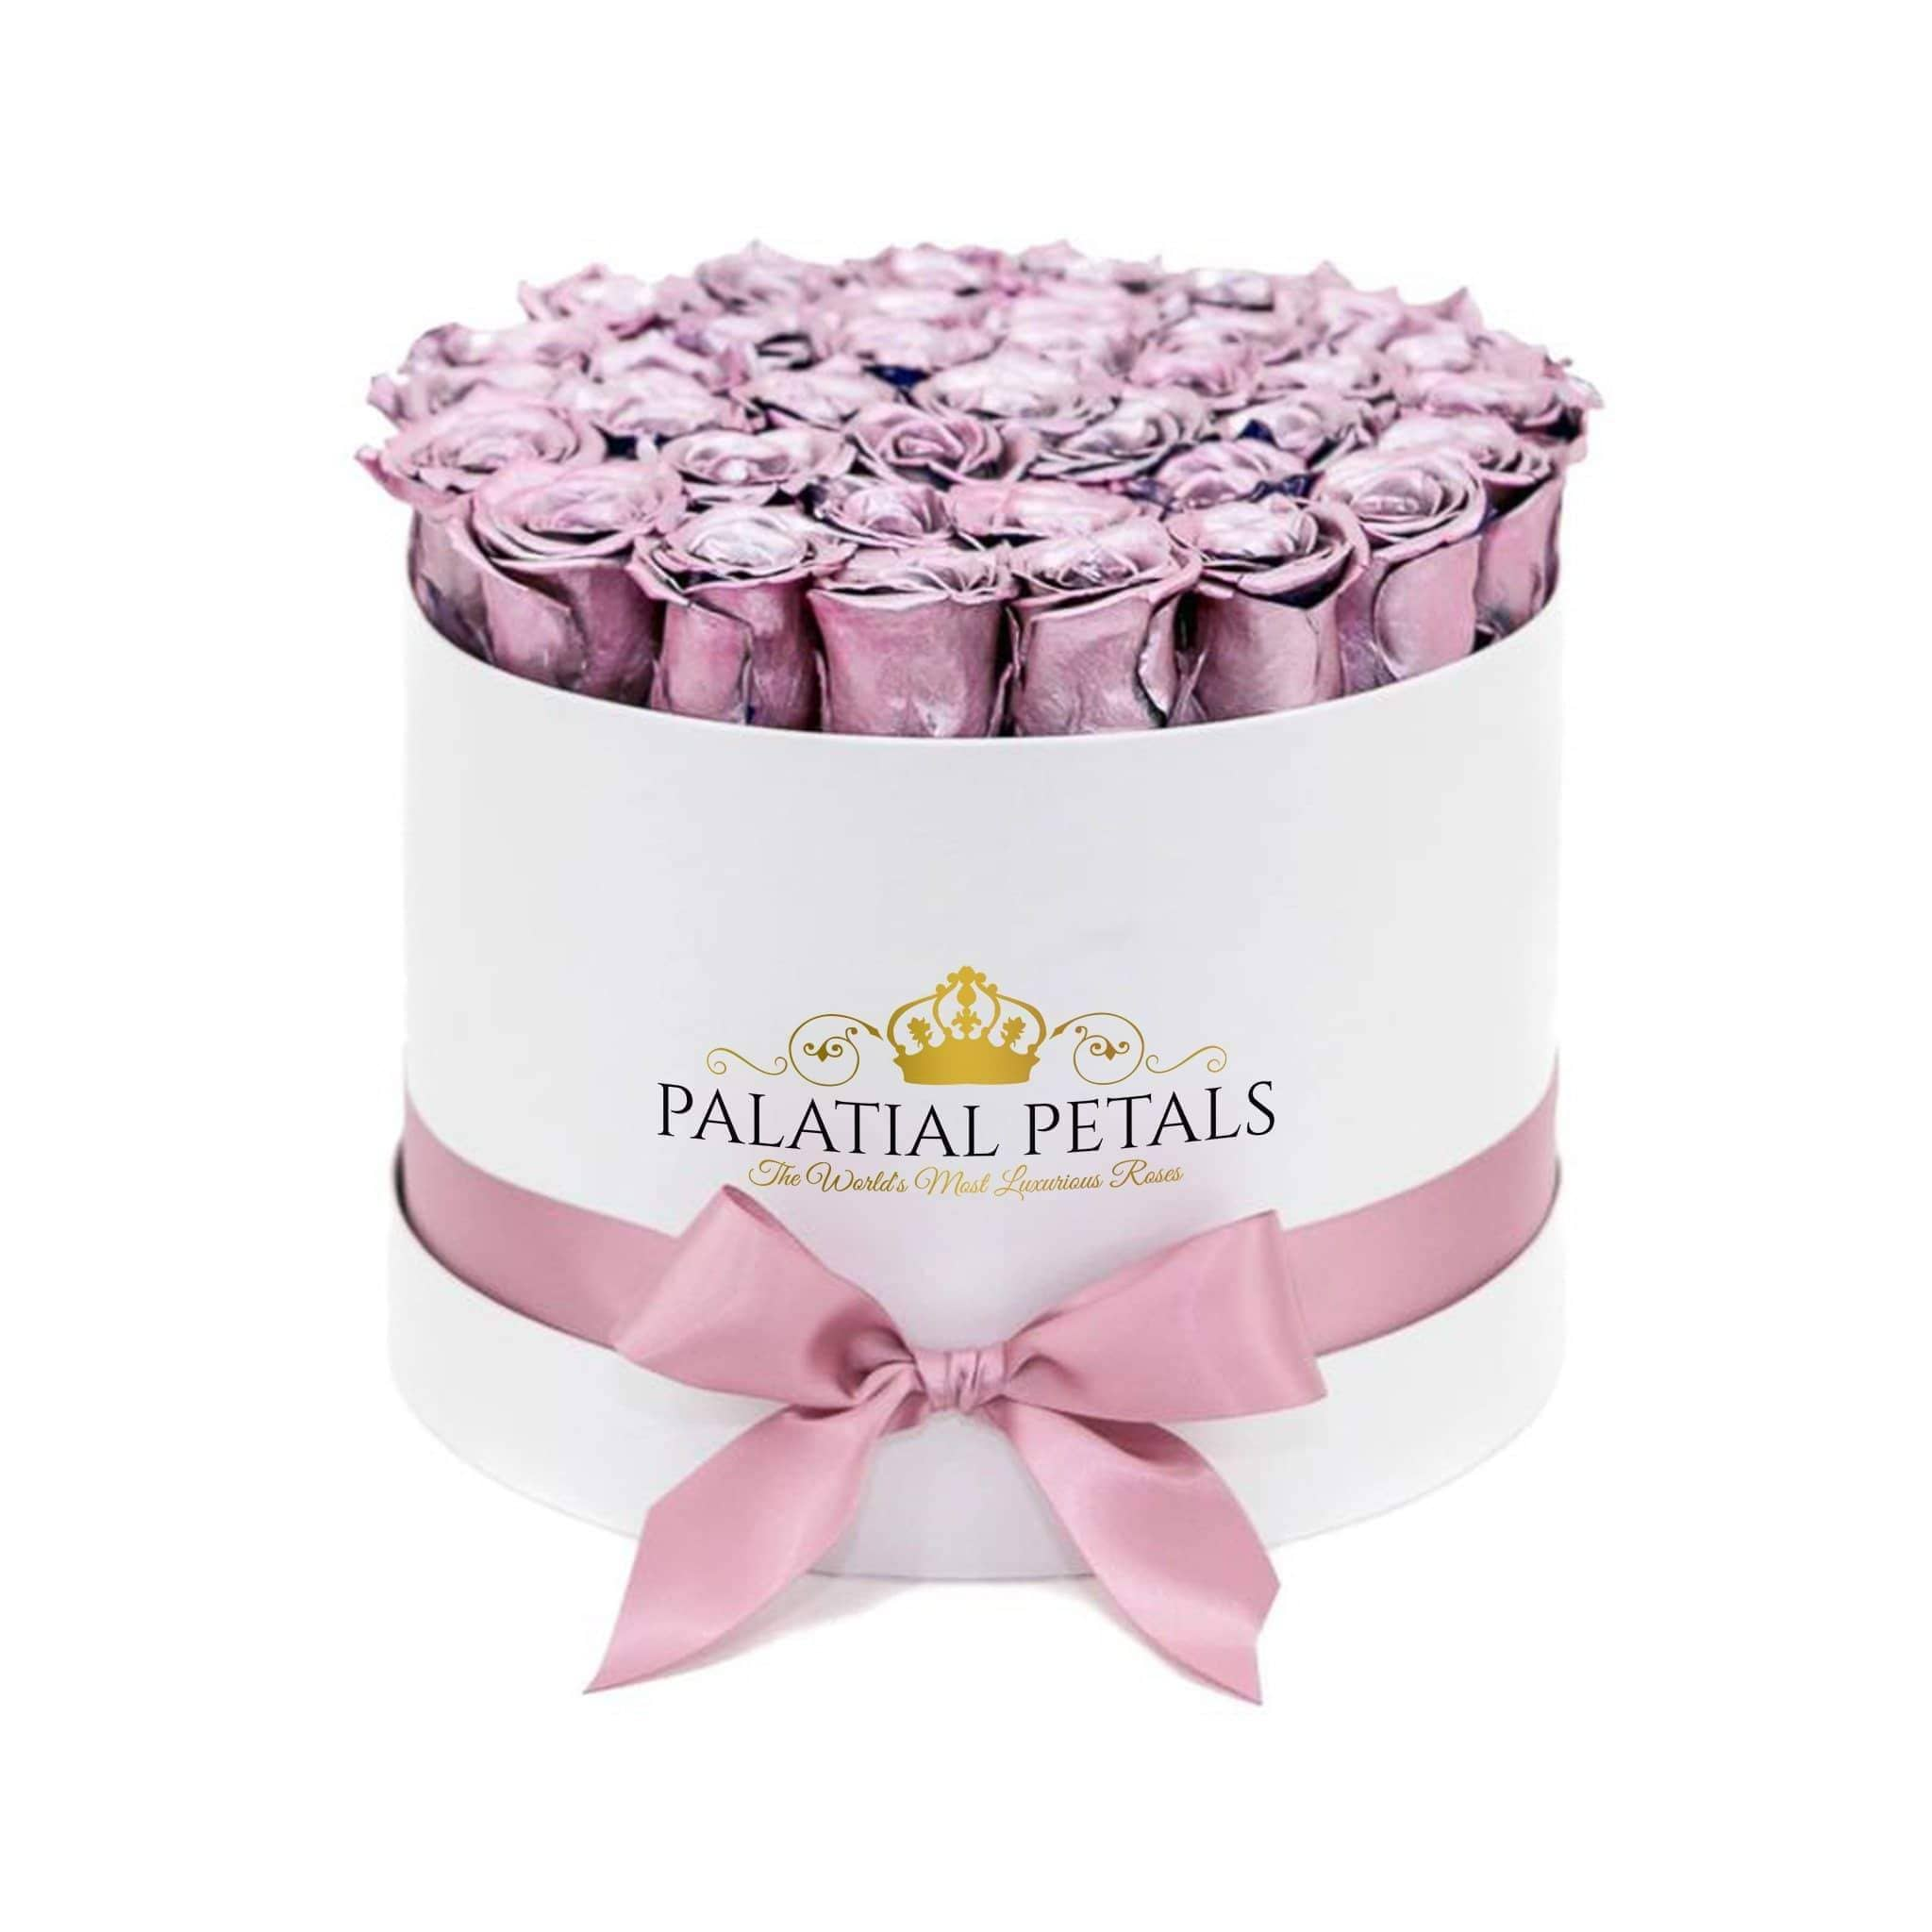 Shiny Pink Roses That Last A Year - Large Rose Box - Palatial Petals